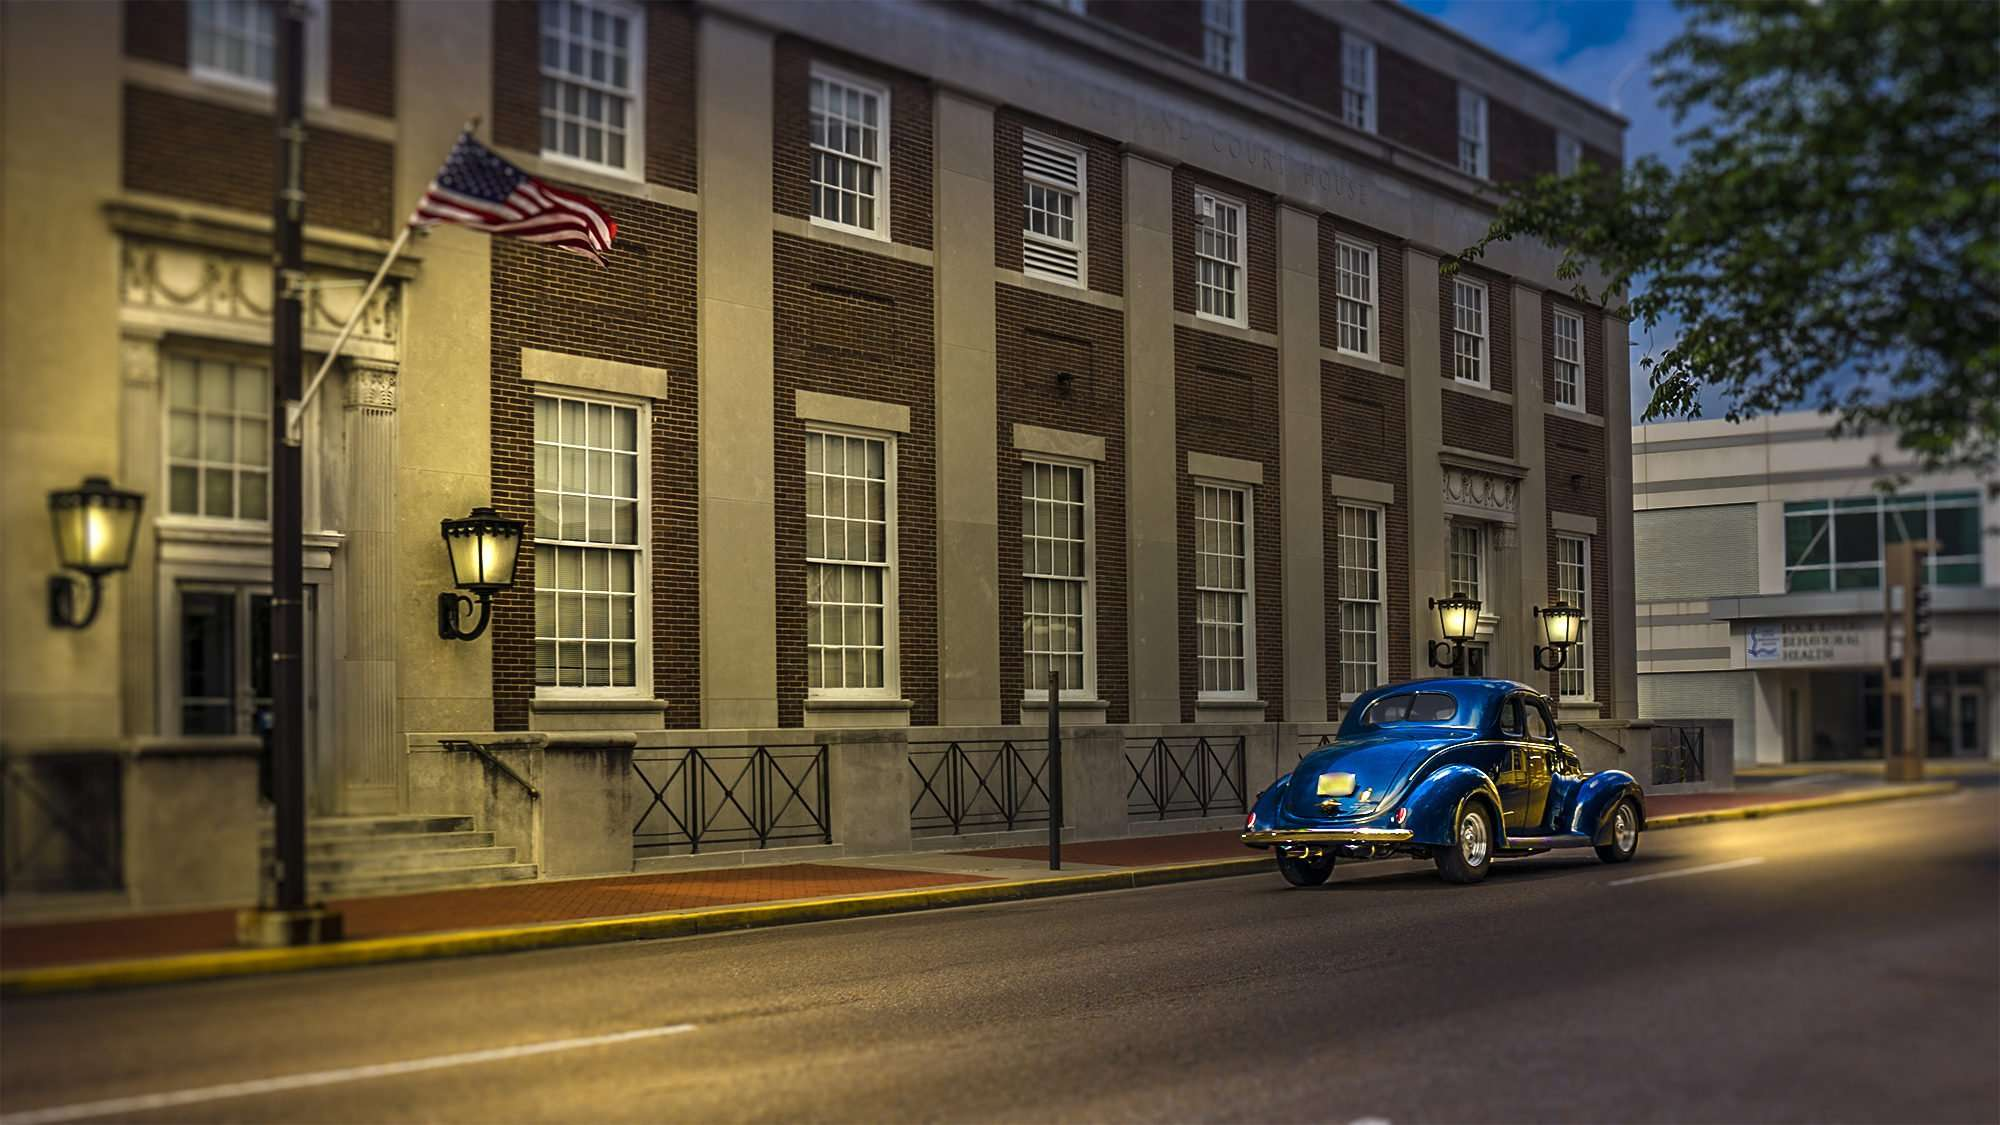 May 28, 2017 - Classic hot rod driving down Broadway by Federal Courthouse in downtown Paducah, KY/photonews247.com